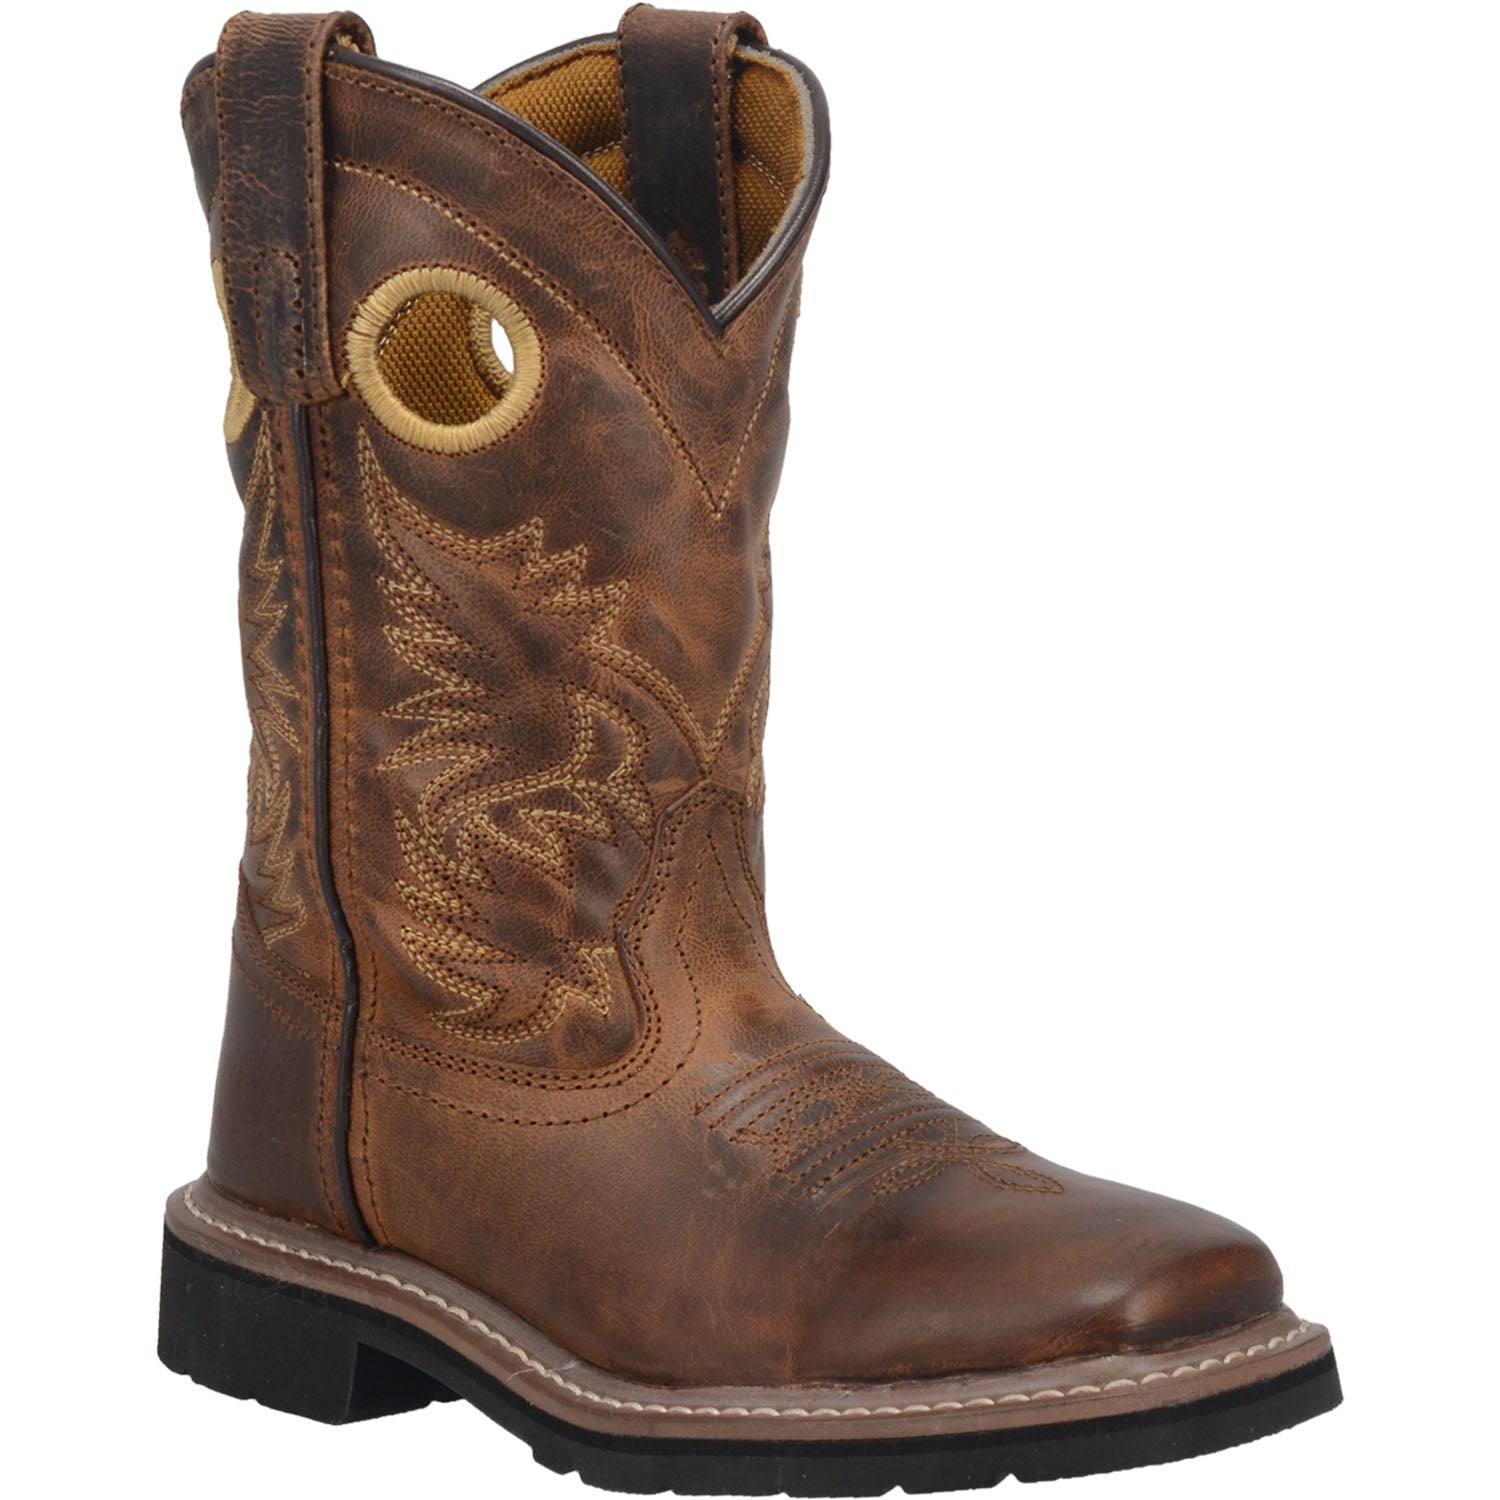 AMARILLO LEATHER CHILDREN'S BOOT 15973510905898